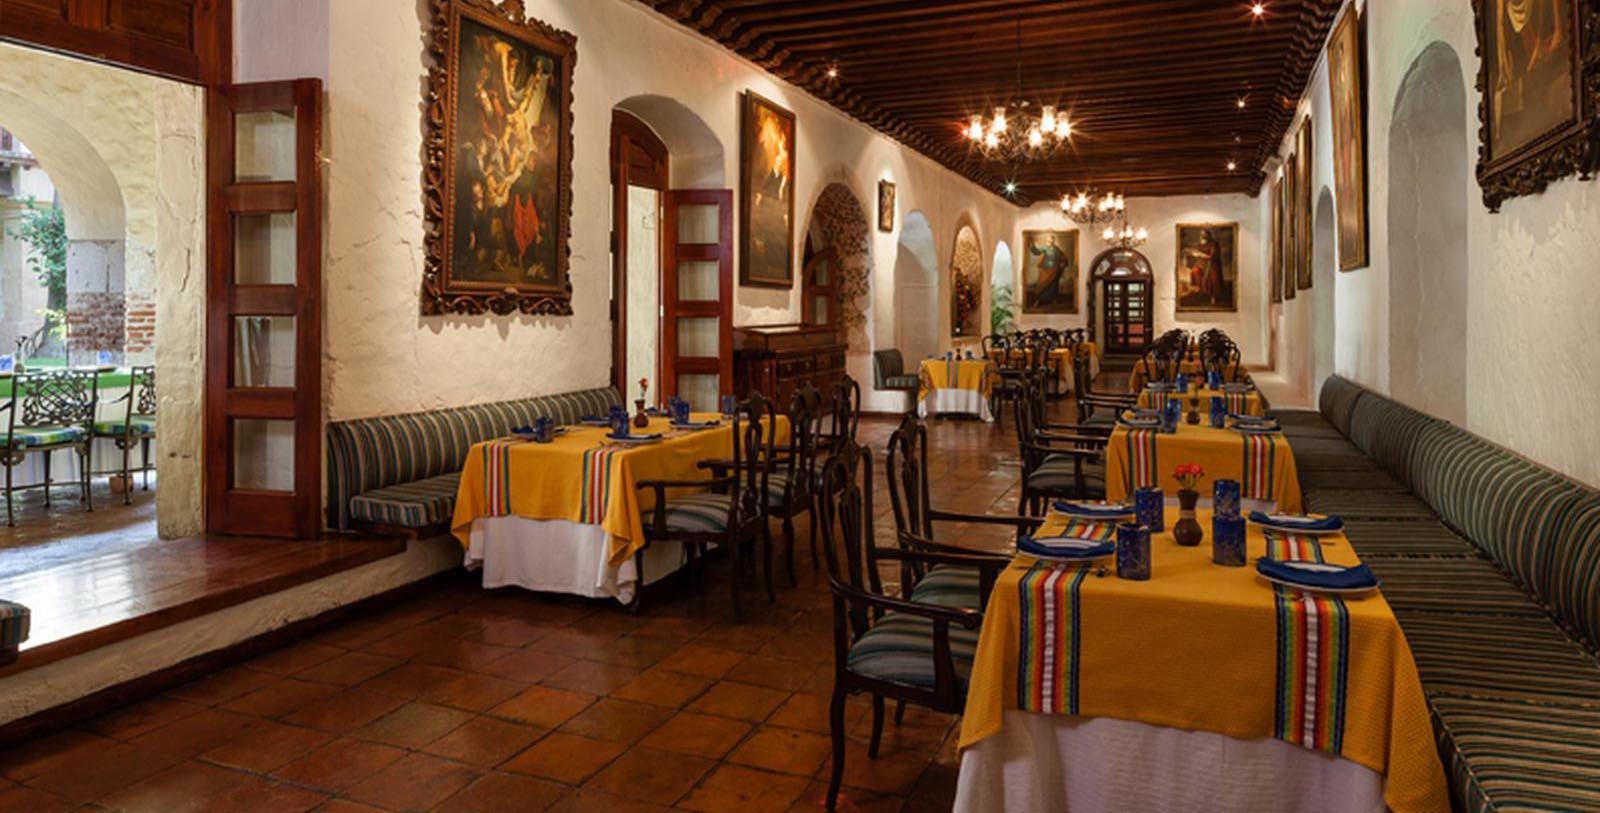 Image of Dining Area Quinta Real Oaxaca, 1576, Member of Historic Hotels Worldwide, in Oaxaca, Mexico, Taste